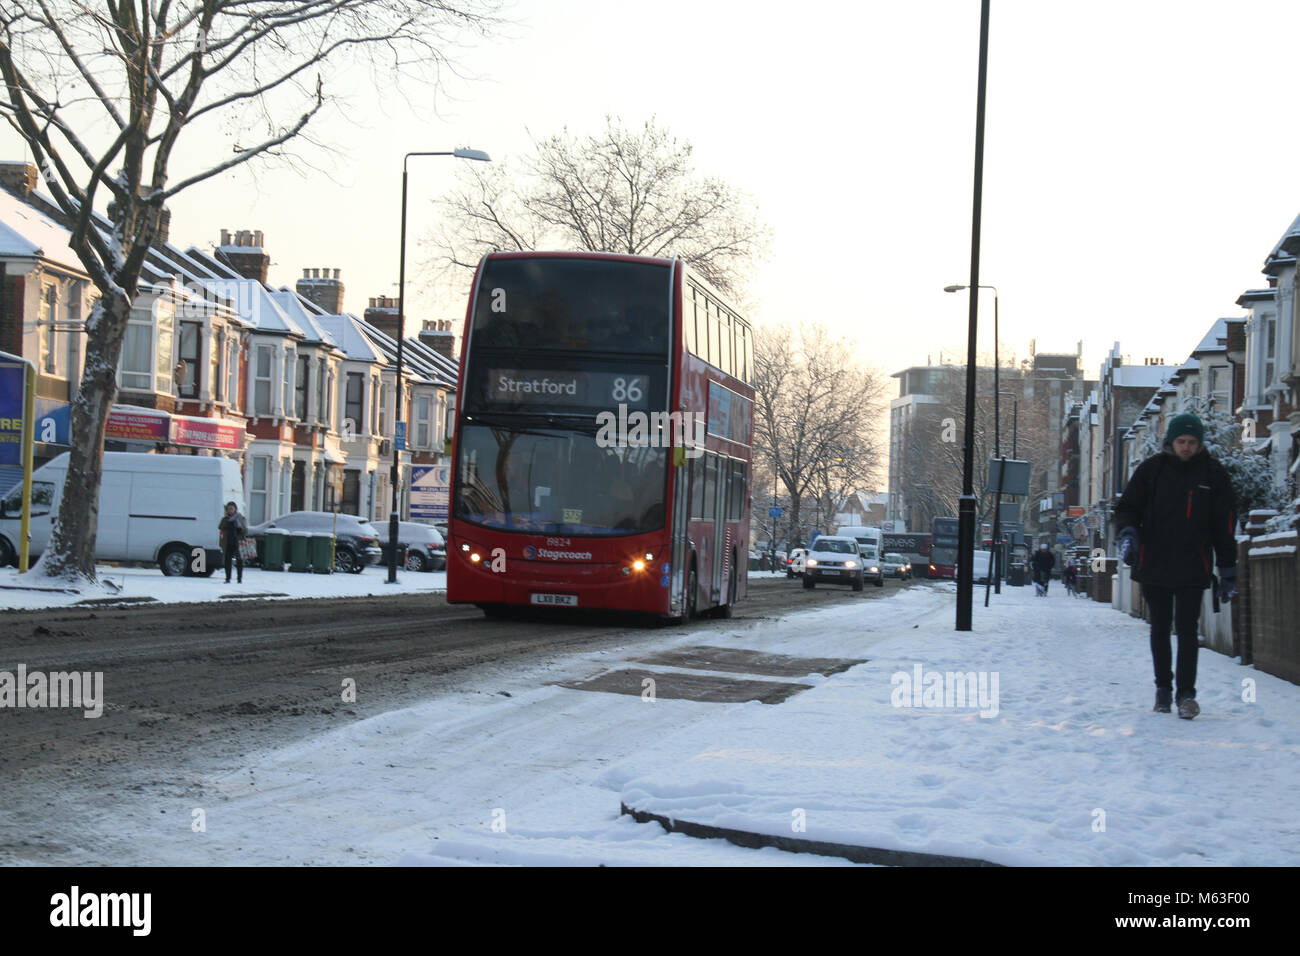 LONDON, UK - February 28: Streets of East London were covered with snow following  a shower on 28 February. The - Stock Image